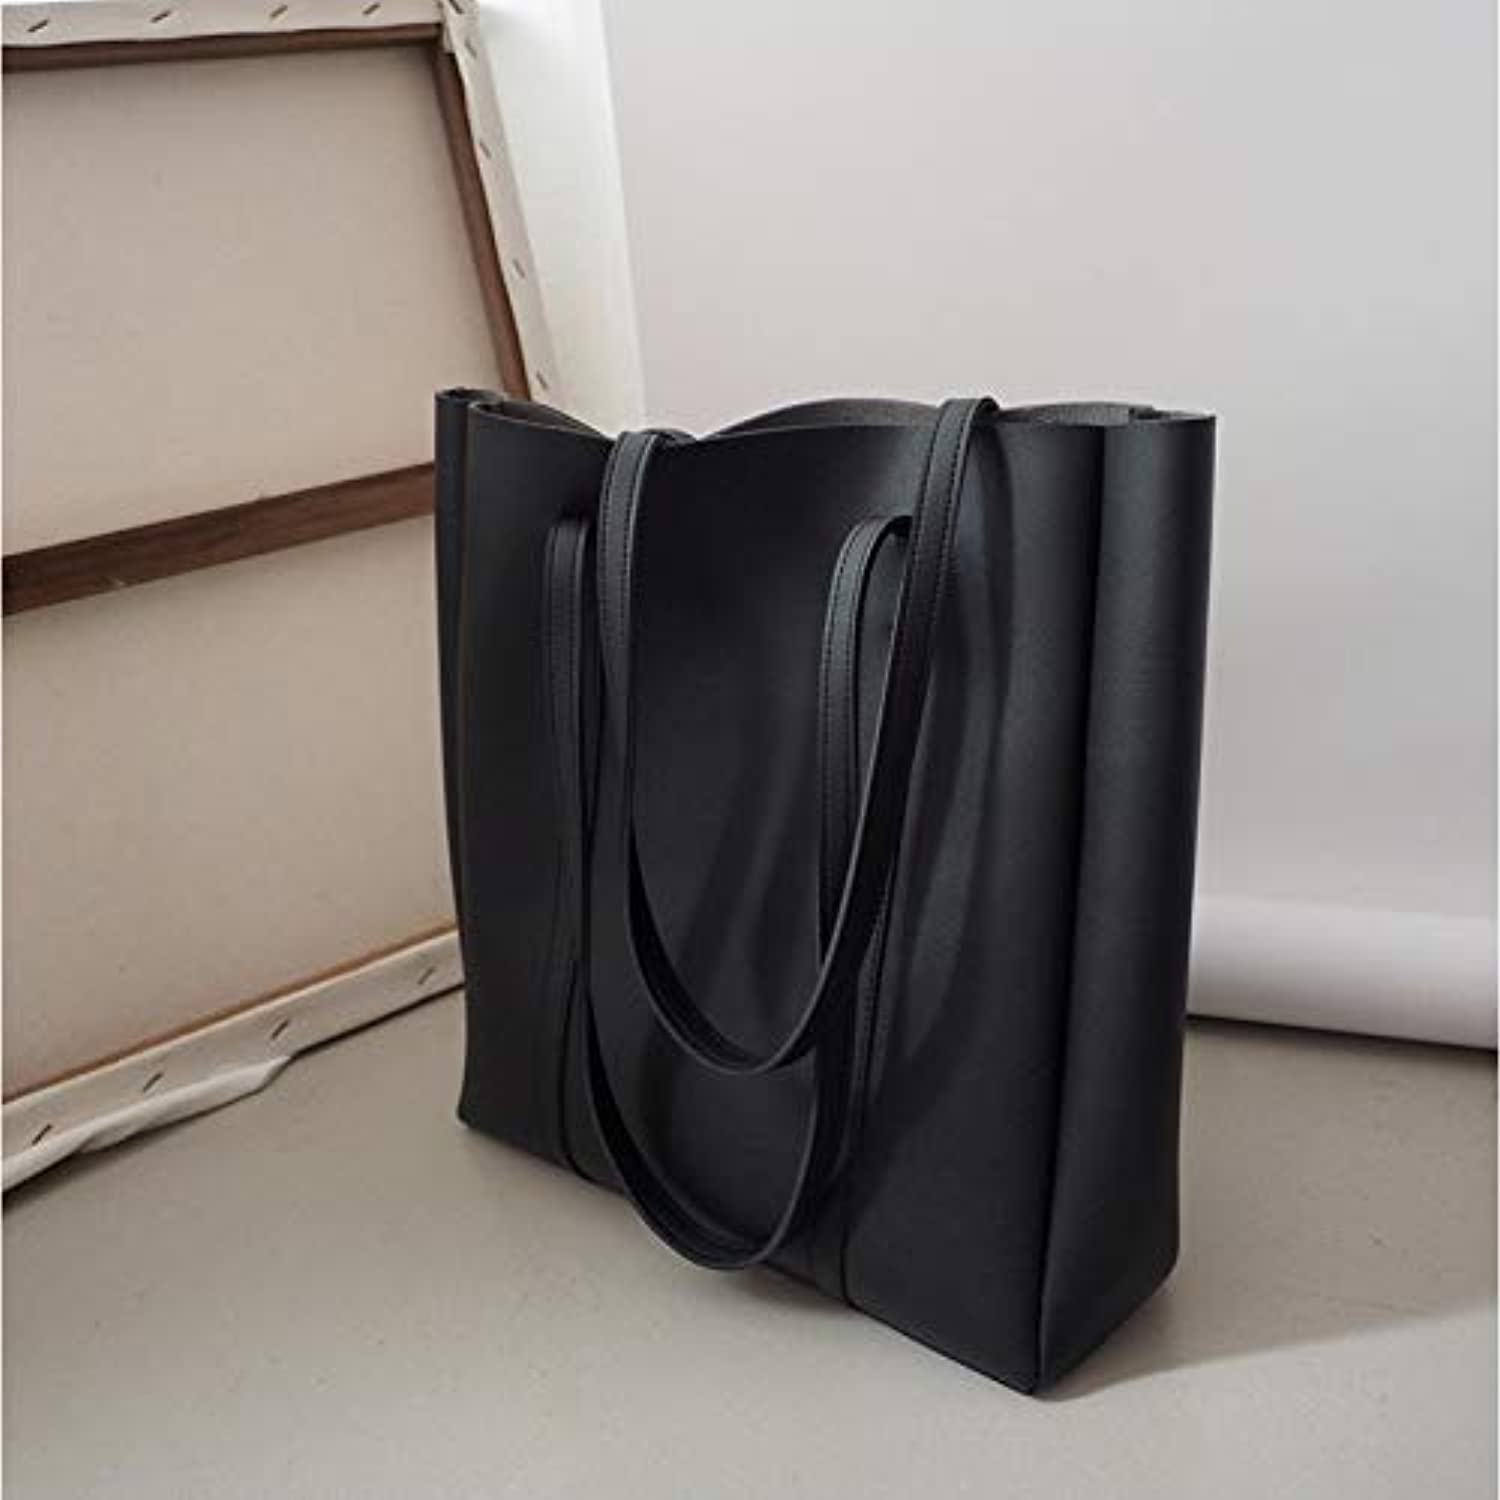 WANGZHAO Women's Bag, Fashion Bag, Big Capacity, Single Shoulder Bag, Casual, Casual, Mother Bag.